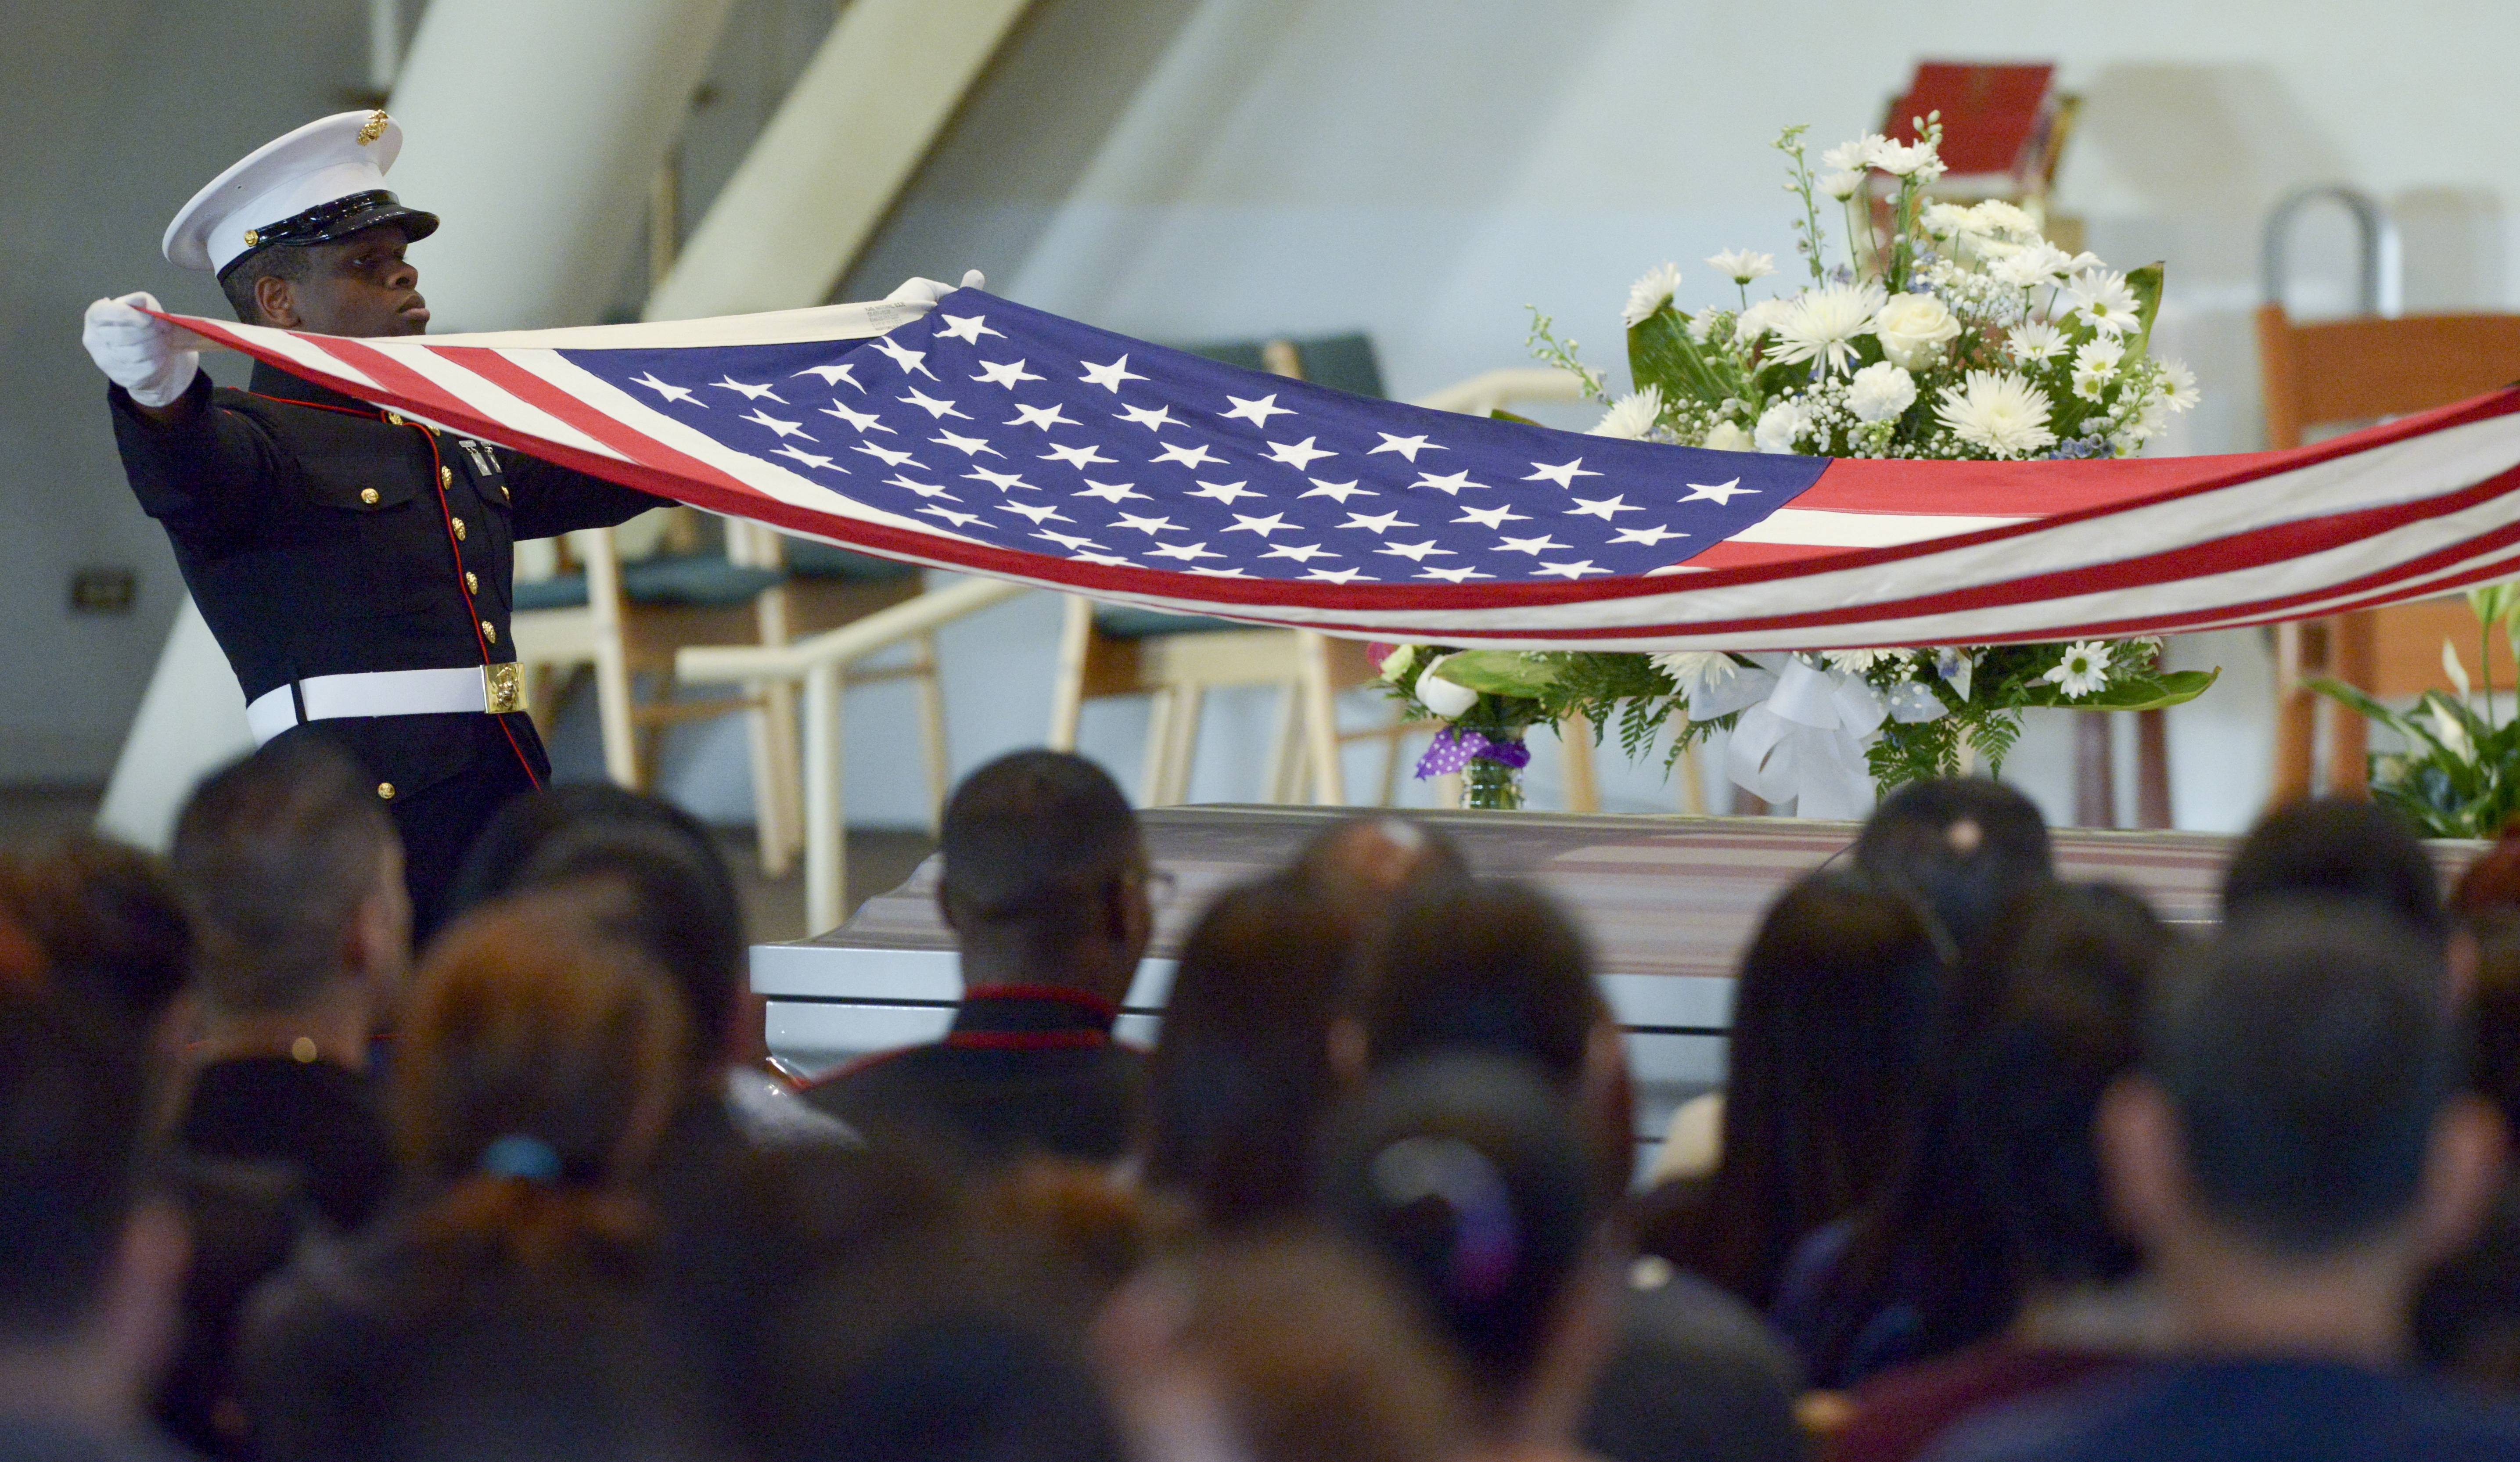 A Marine honor guard prepares to fold the American Flag from the casket of Marine Cpl. Sara A. Medina during the funeral service Wednesday for her at St. Mary Immaculate Parish in Plainfield. Medina was killed in a helicopter crash while on a relief mission in Nepal.